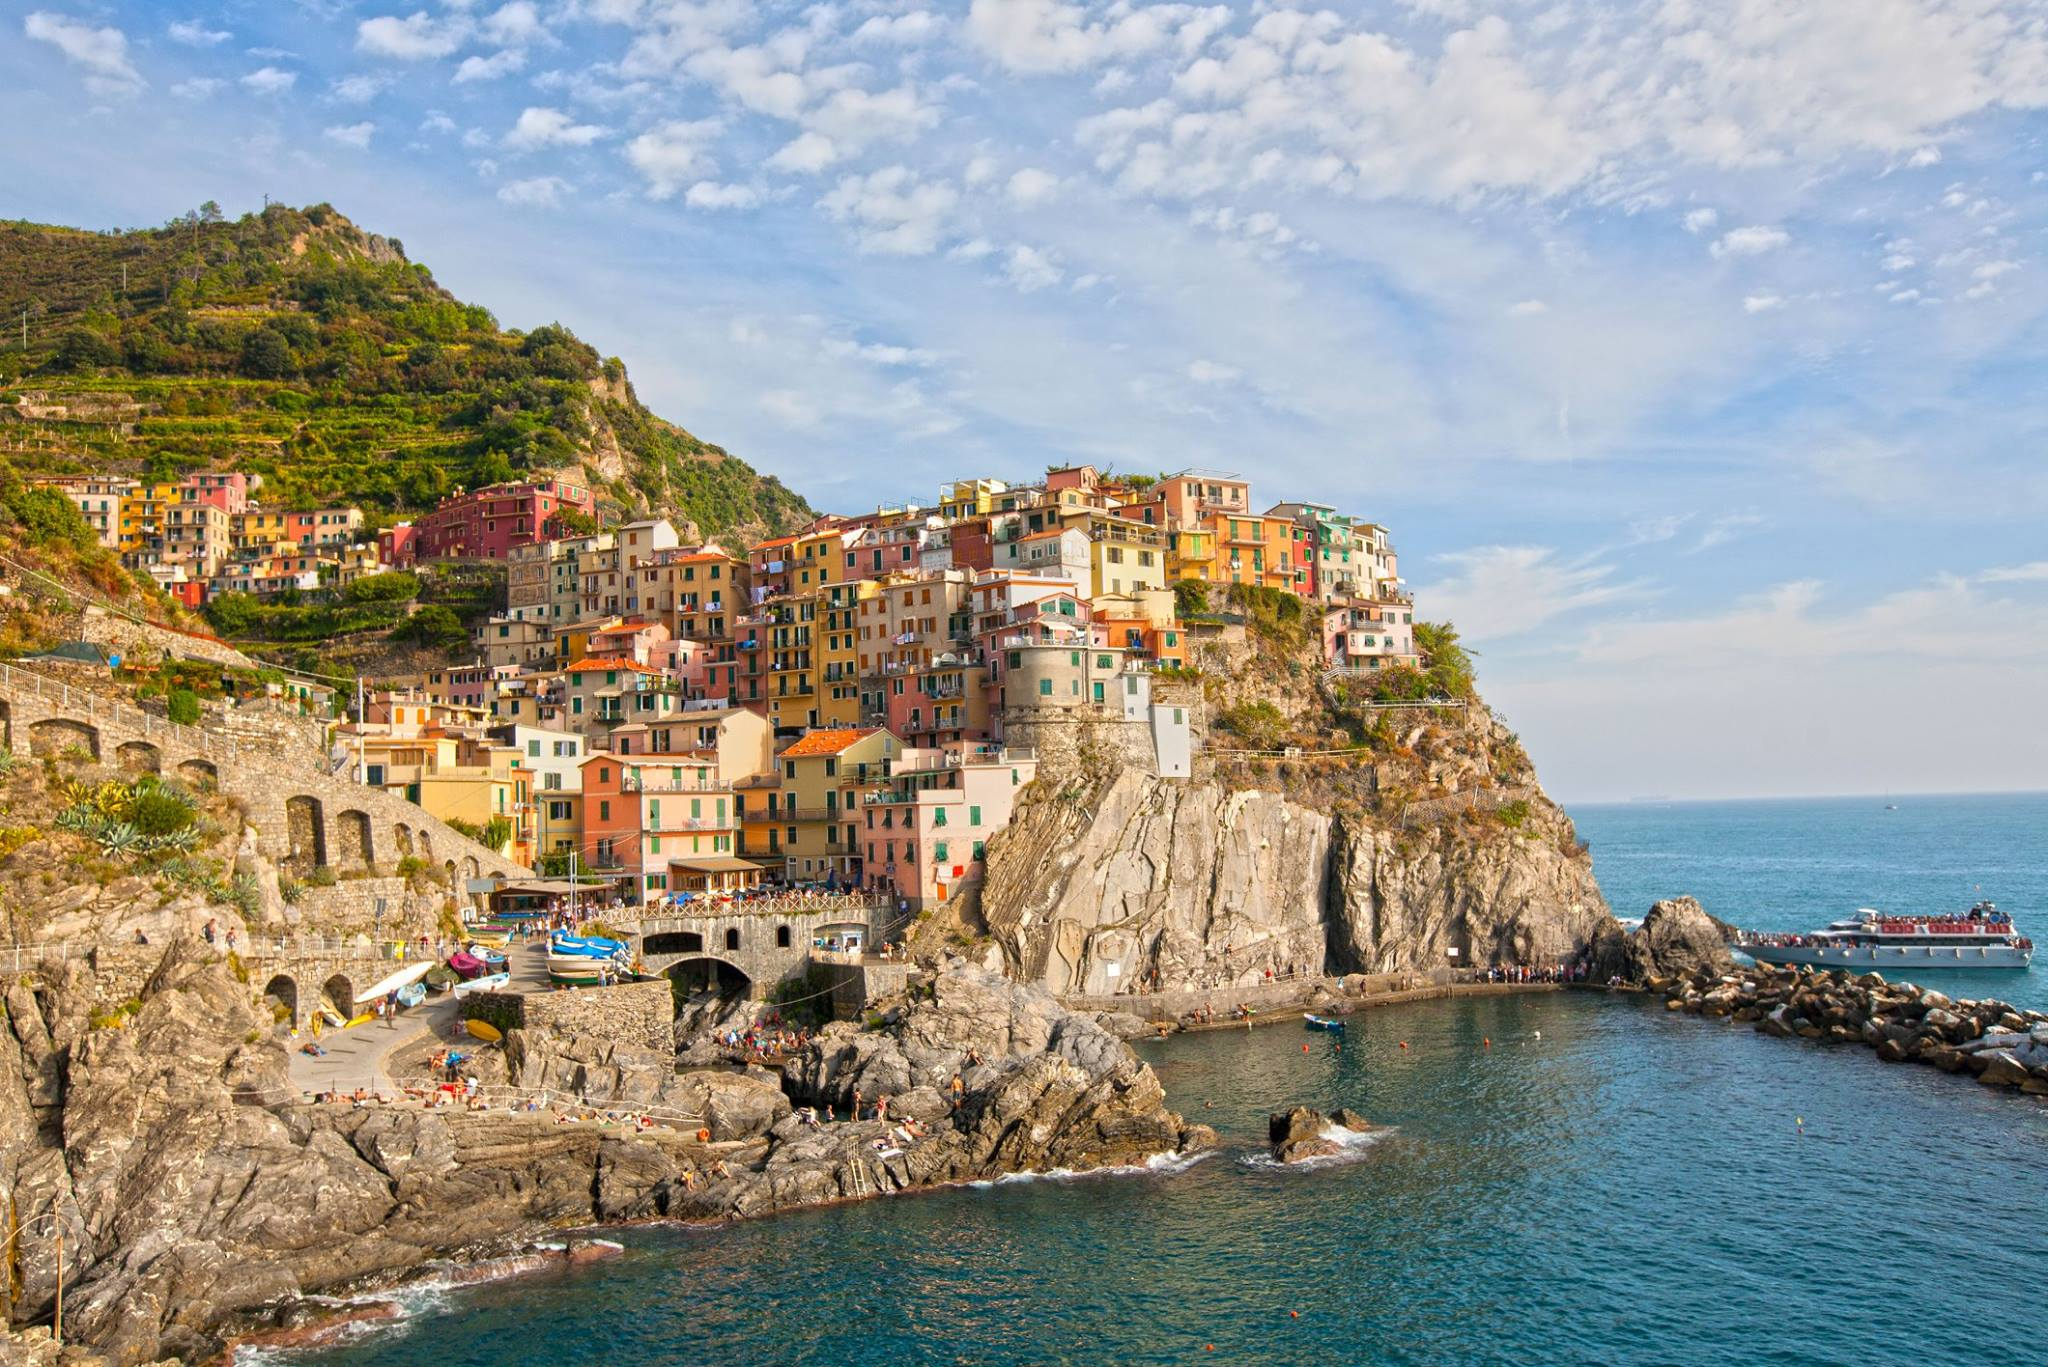 Two Weeks In Italy: Manarola, Cinque Terre